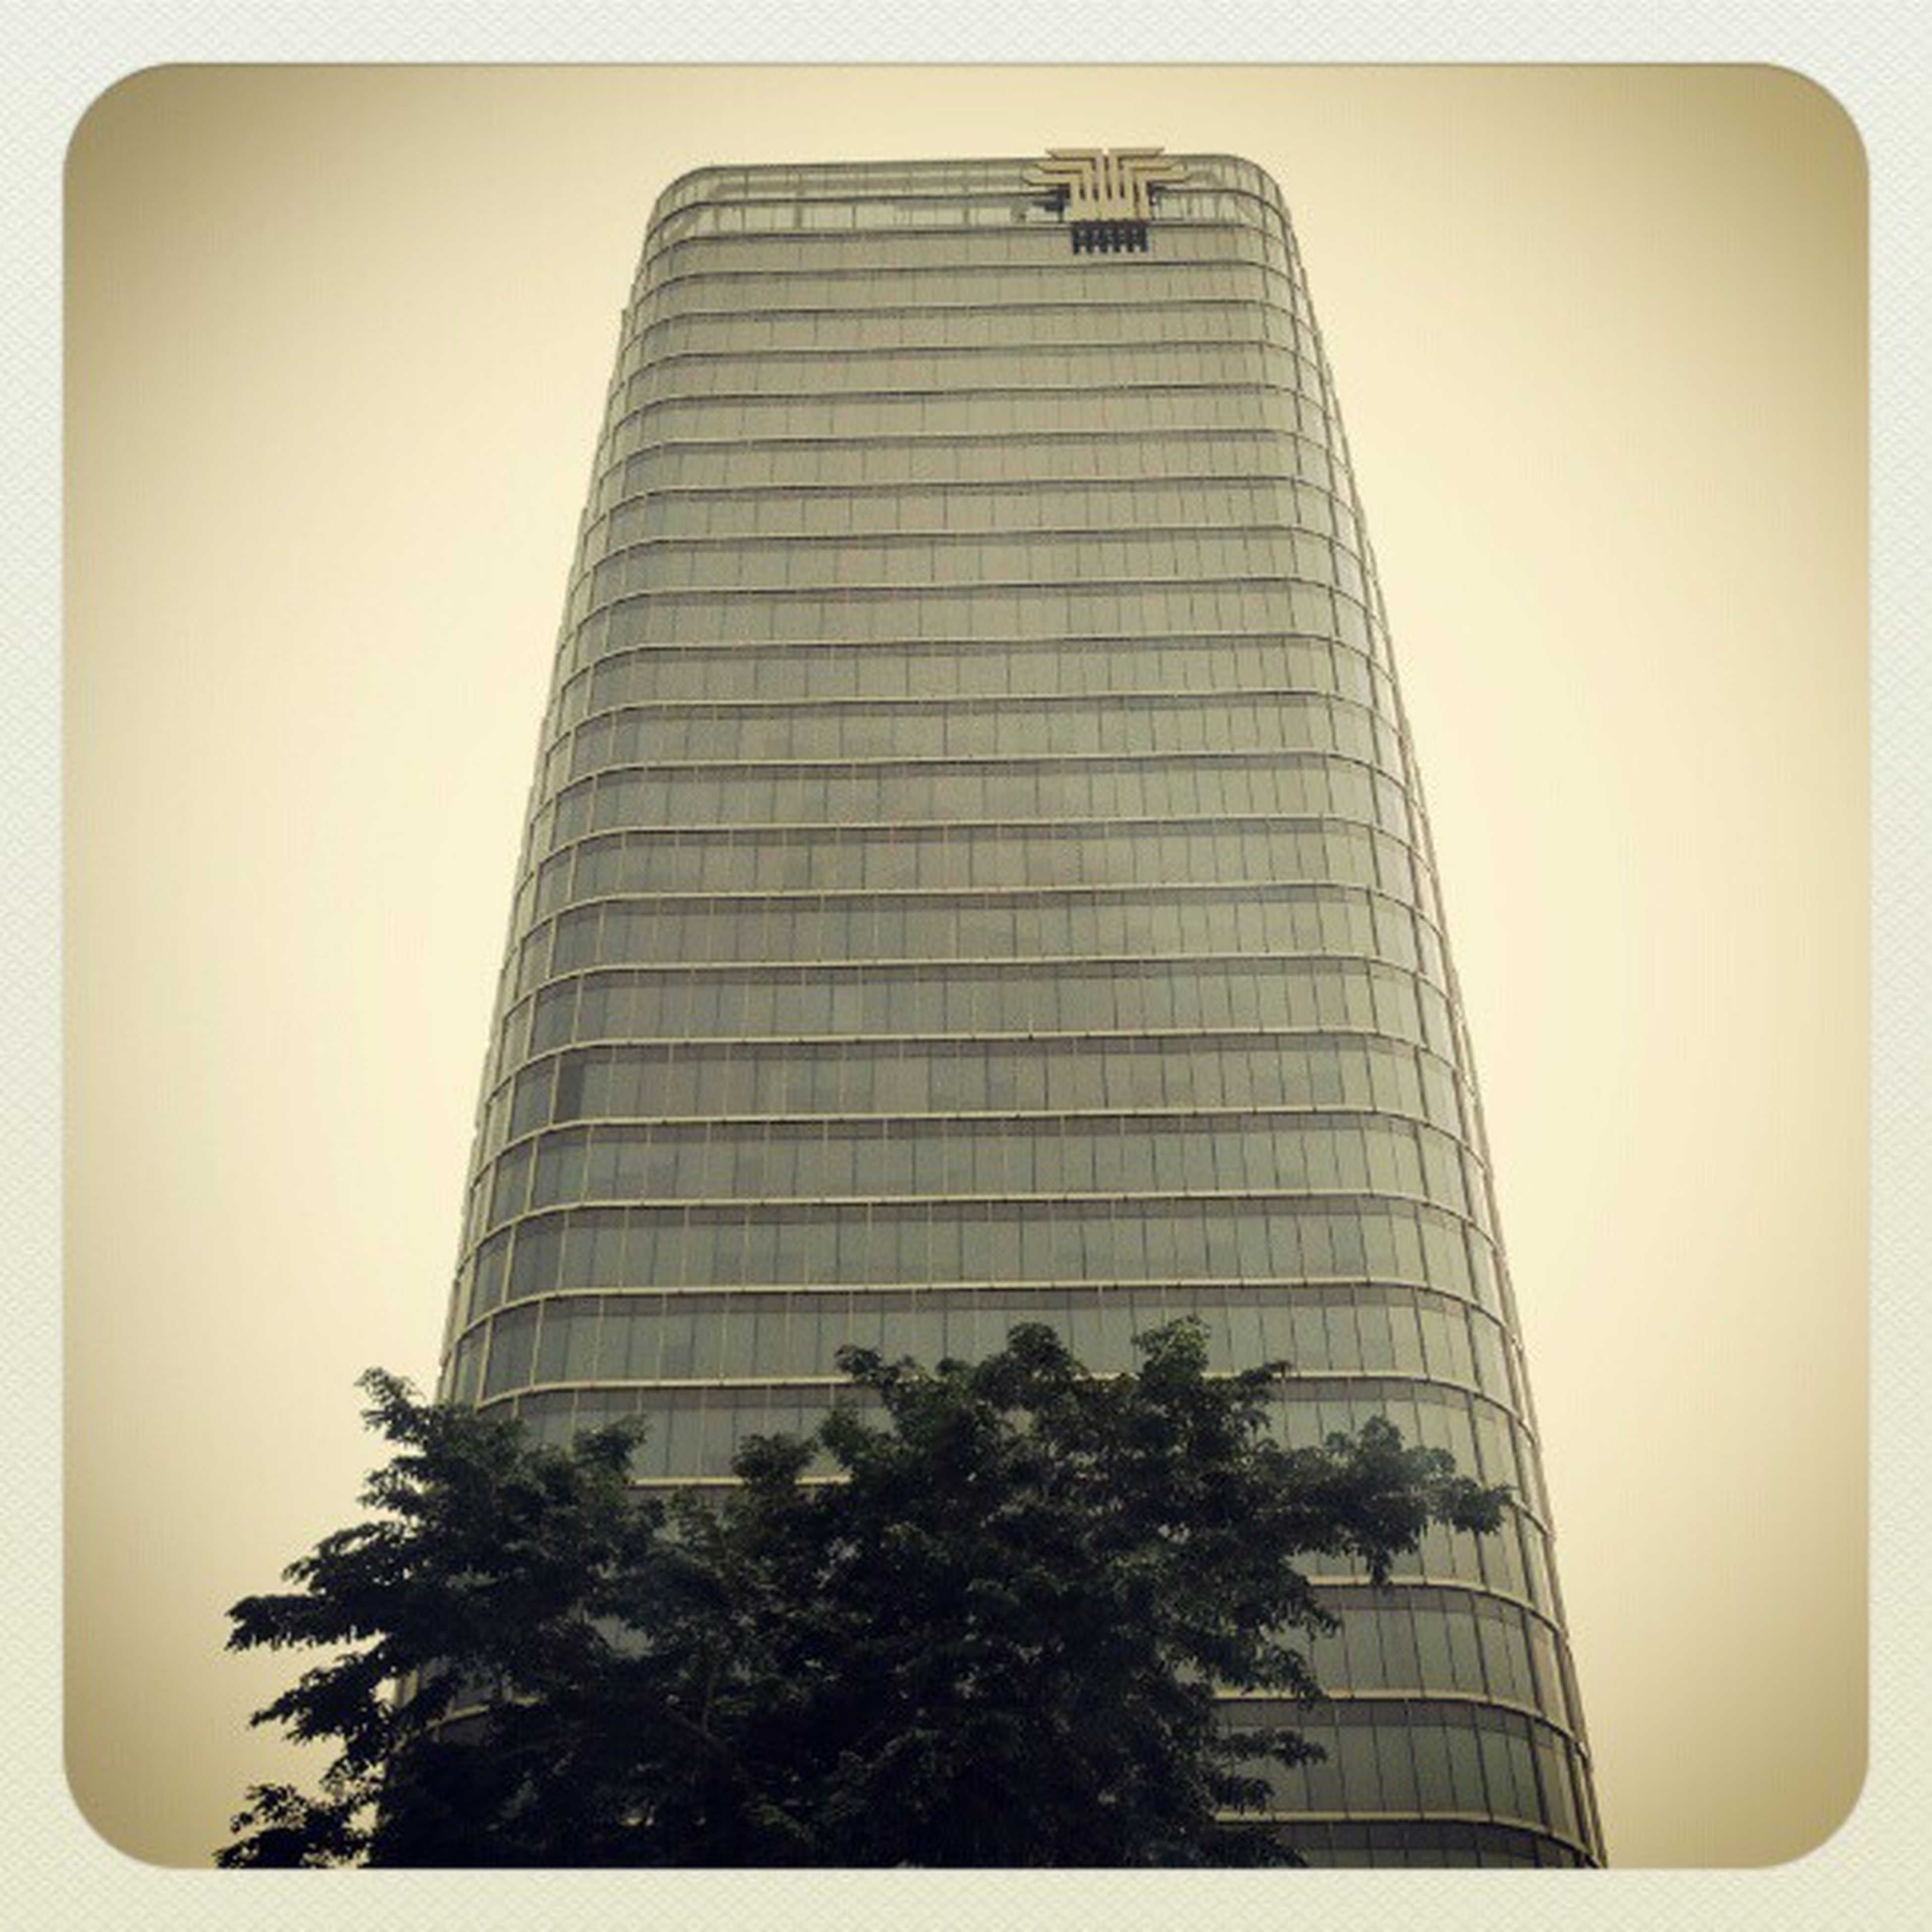 architecture, building exterior, built structure, low angle view, transfer print, auto post production filter, clear sky, tower, modern, tall - high, office building, tree, city, building, skyscraper, sky, tall, outdoors, day, no people